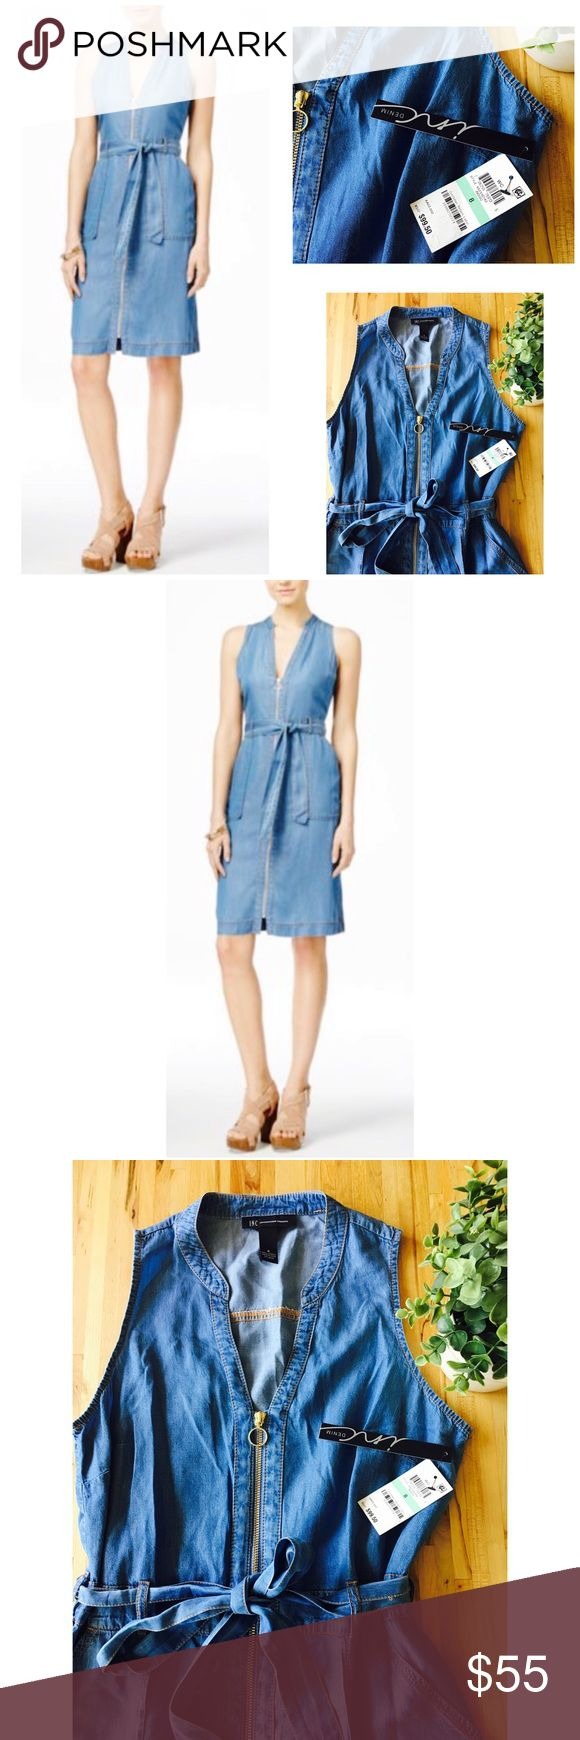 INC Denim Dress!✨ Beautiful INC, Denim, zip-up dress! Gold zipper with brown stitching detail. Double front pockets. Ties at waist! Super soft! Looks even better in person! INC International Concepts Dresses